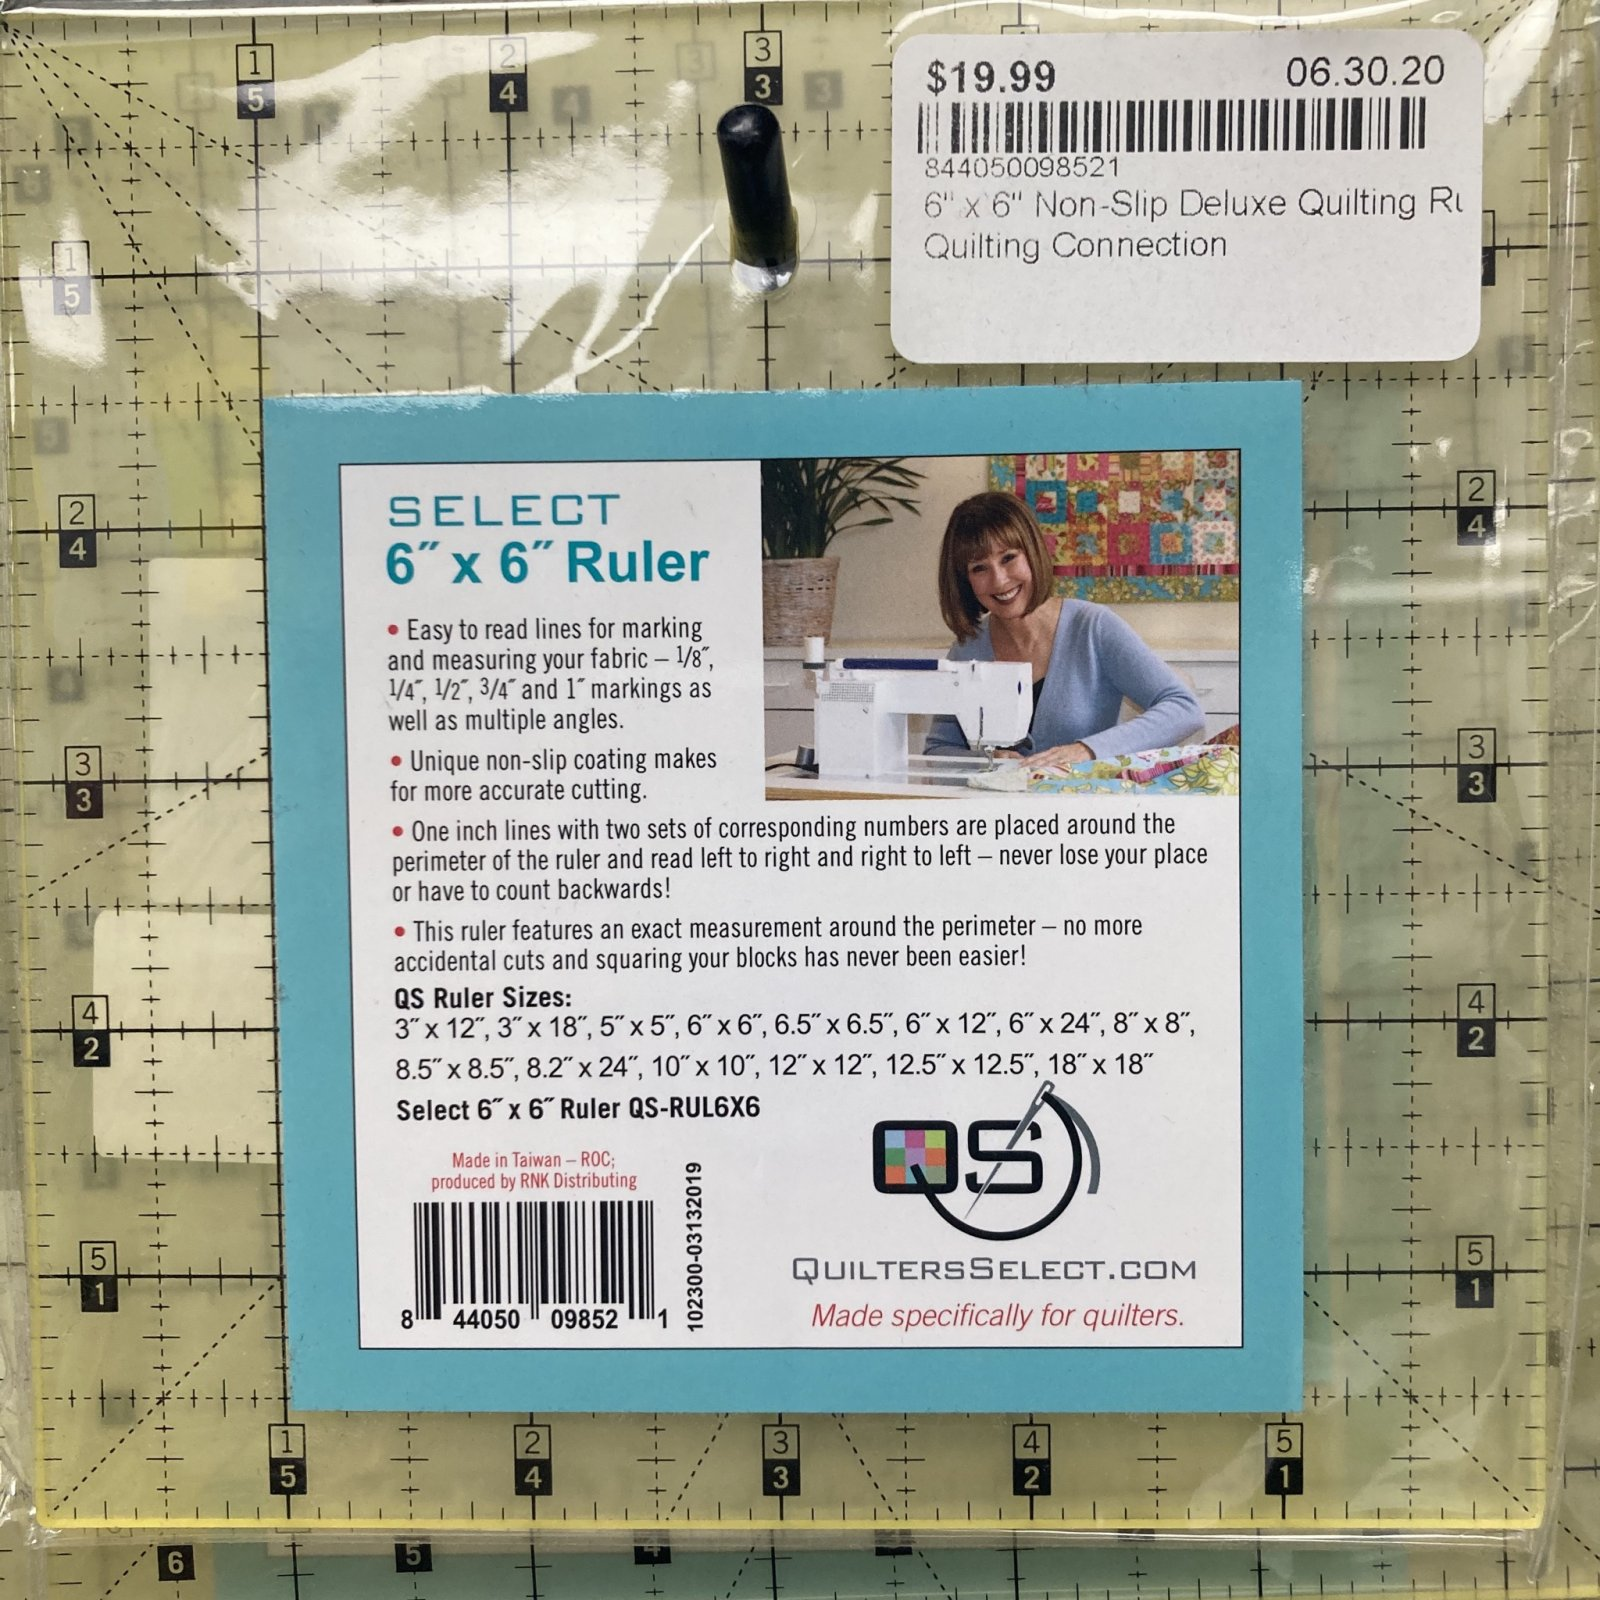 6 x 6 Non-Slip Deluxe Quilting Ruler - Quilters Select